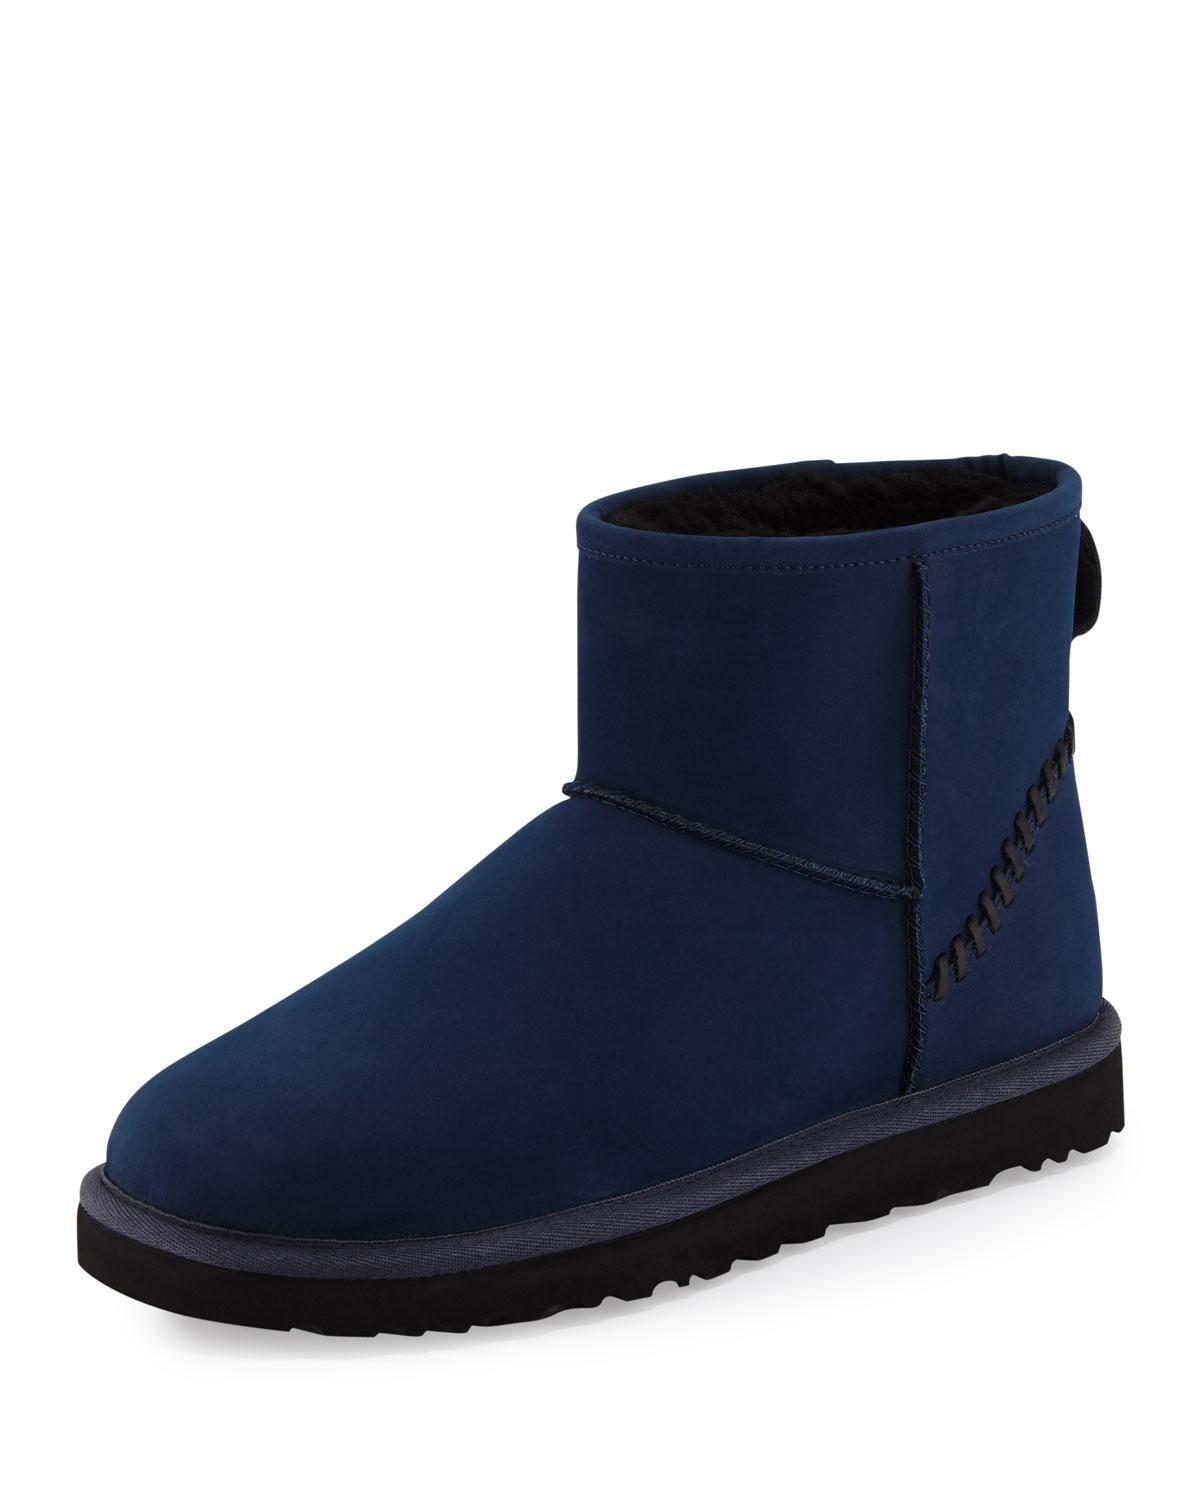 ugg men 39 s classic mini deco boot in blue for men lyst. Black Bedroom Furniture Sets. Home Design Ideas